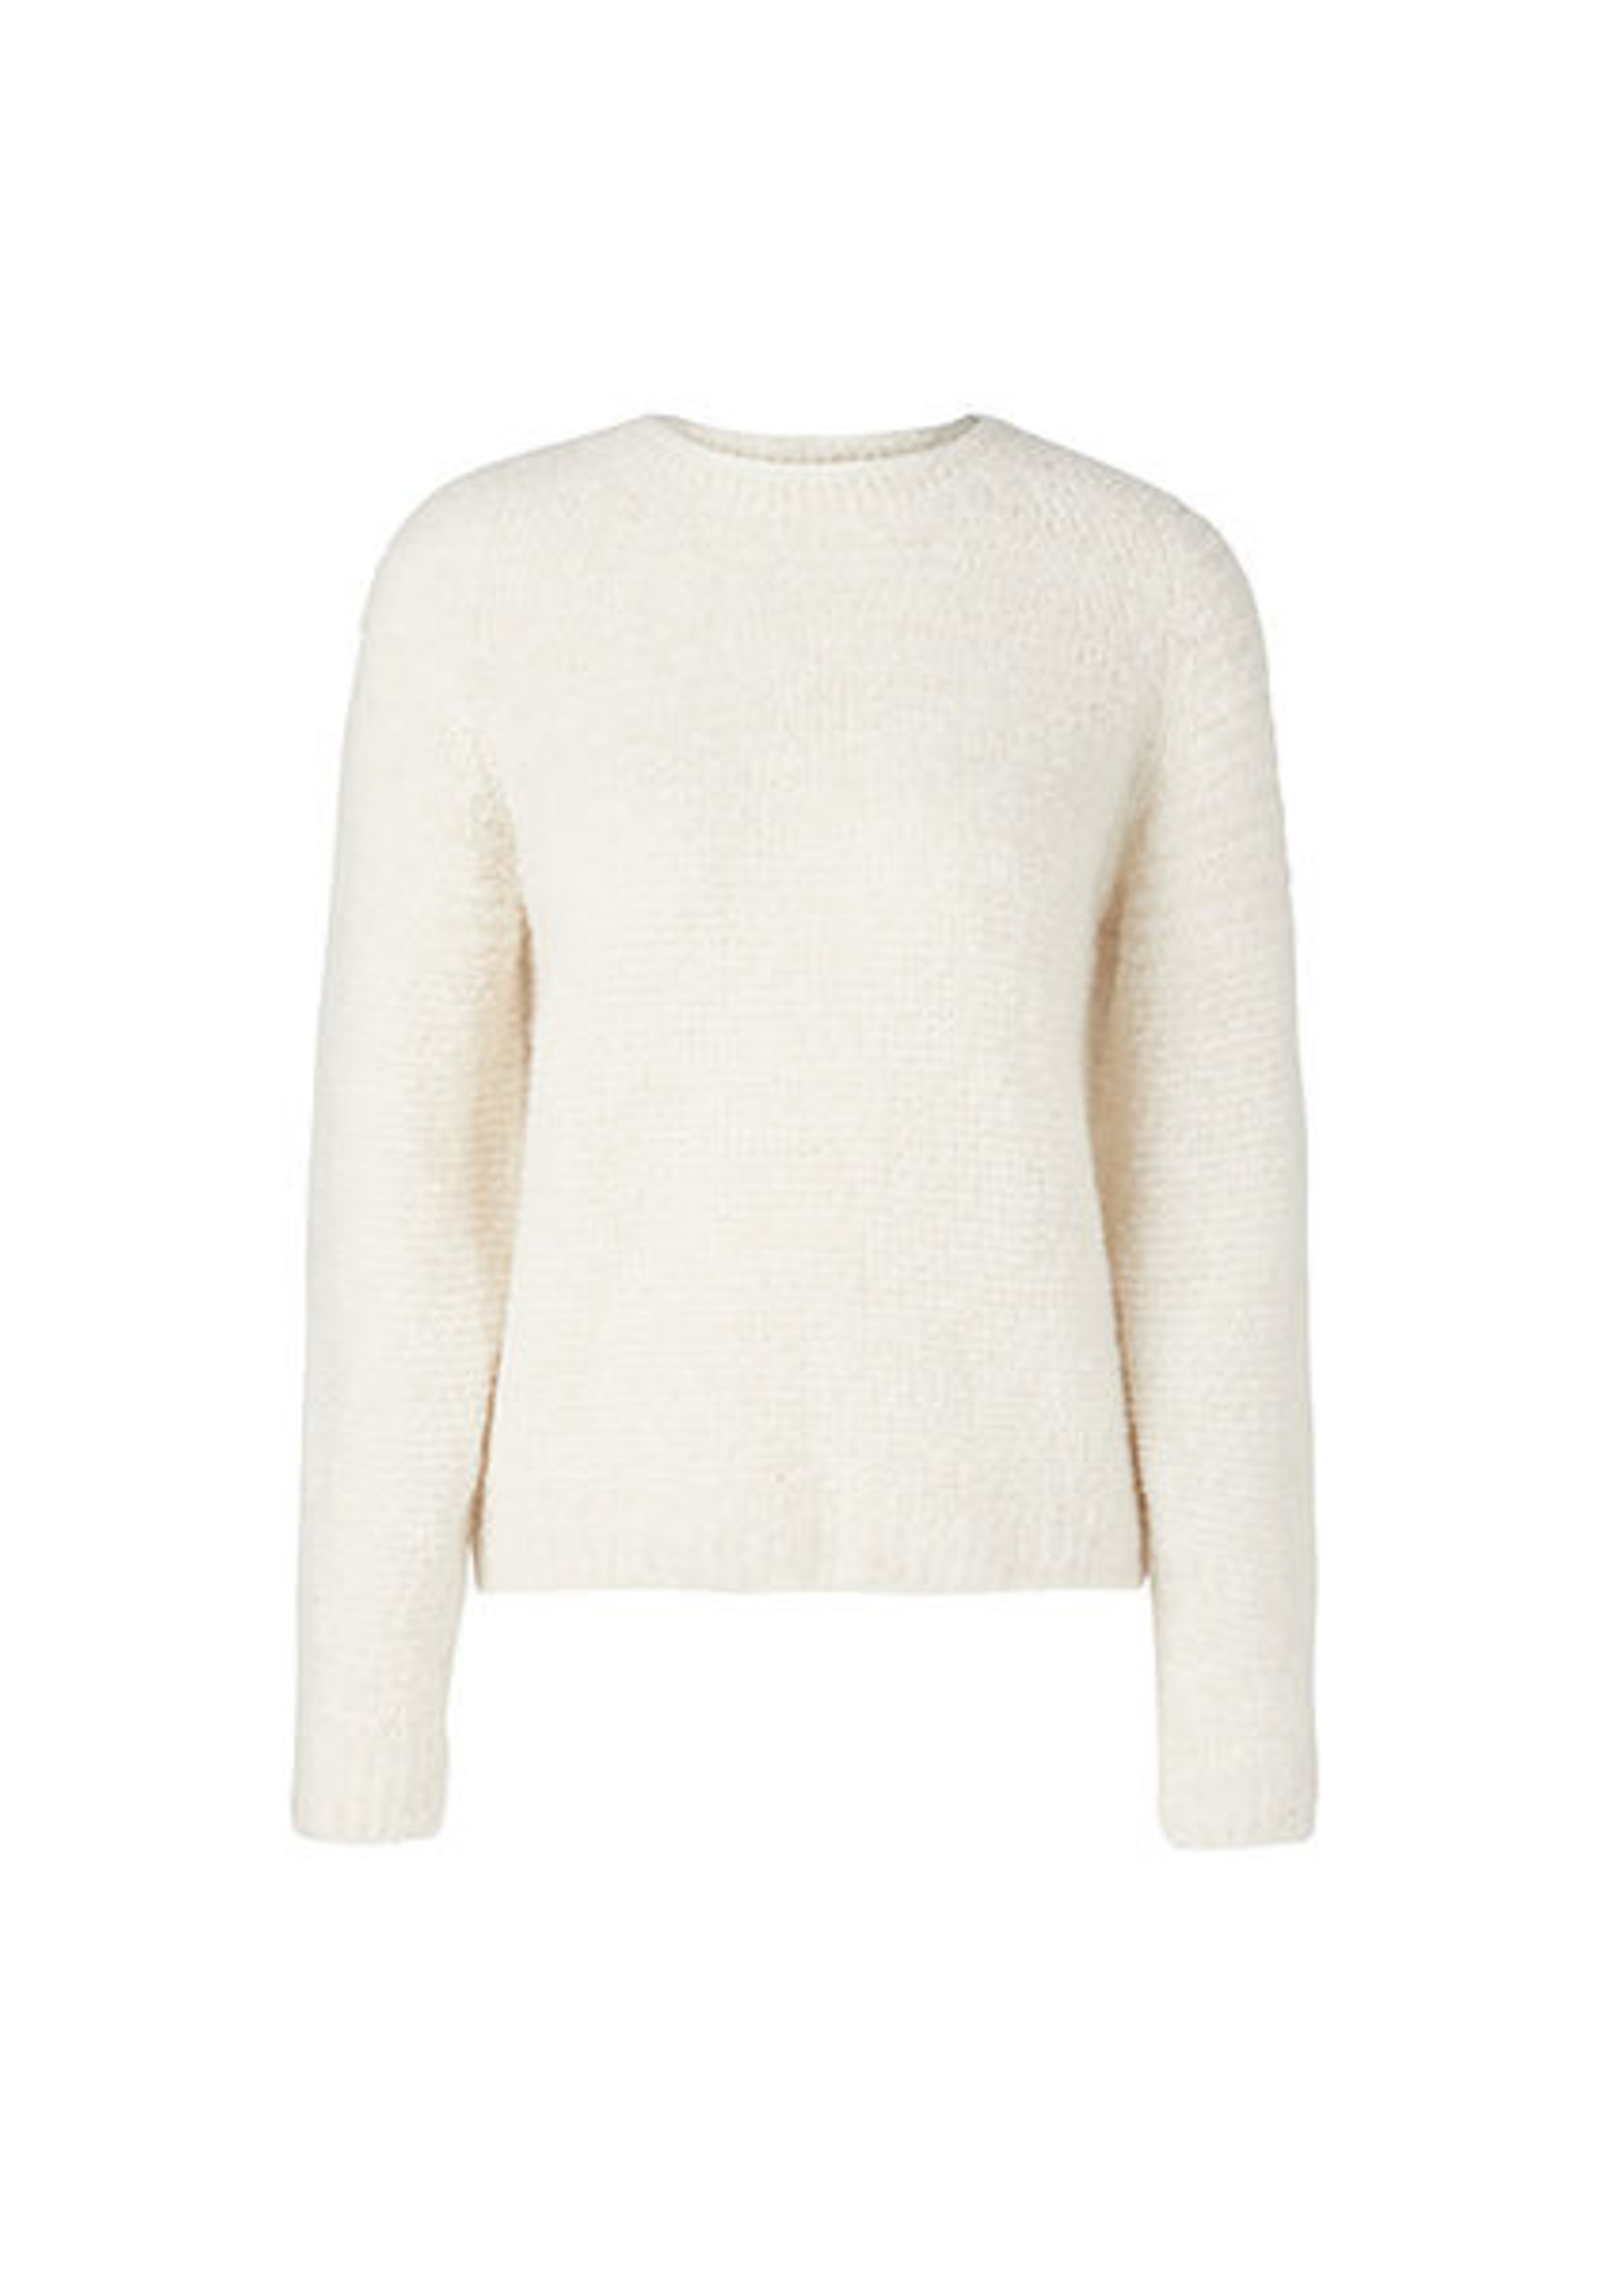 Marccain Sports Sweater RS 41.29 M23 off-white